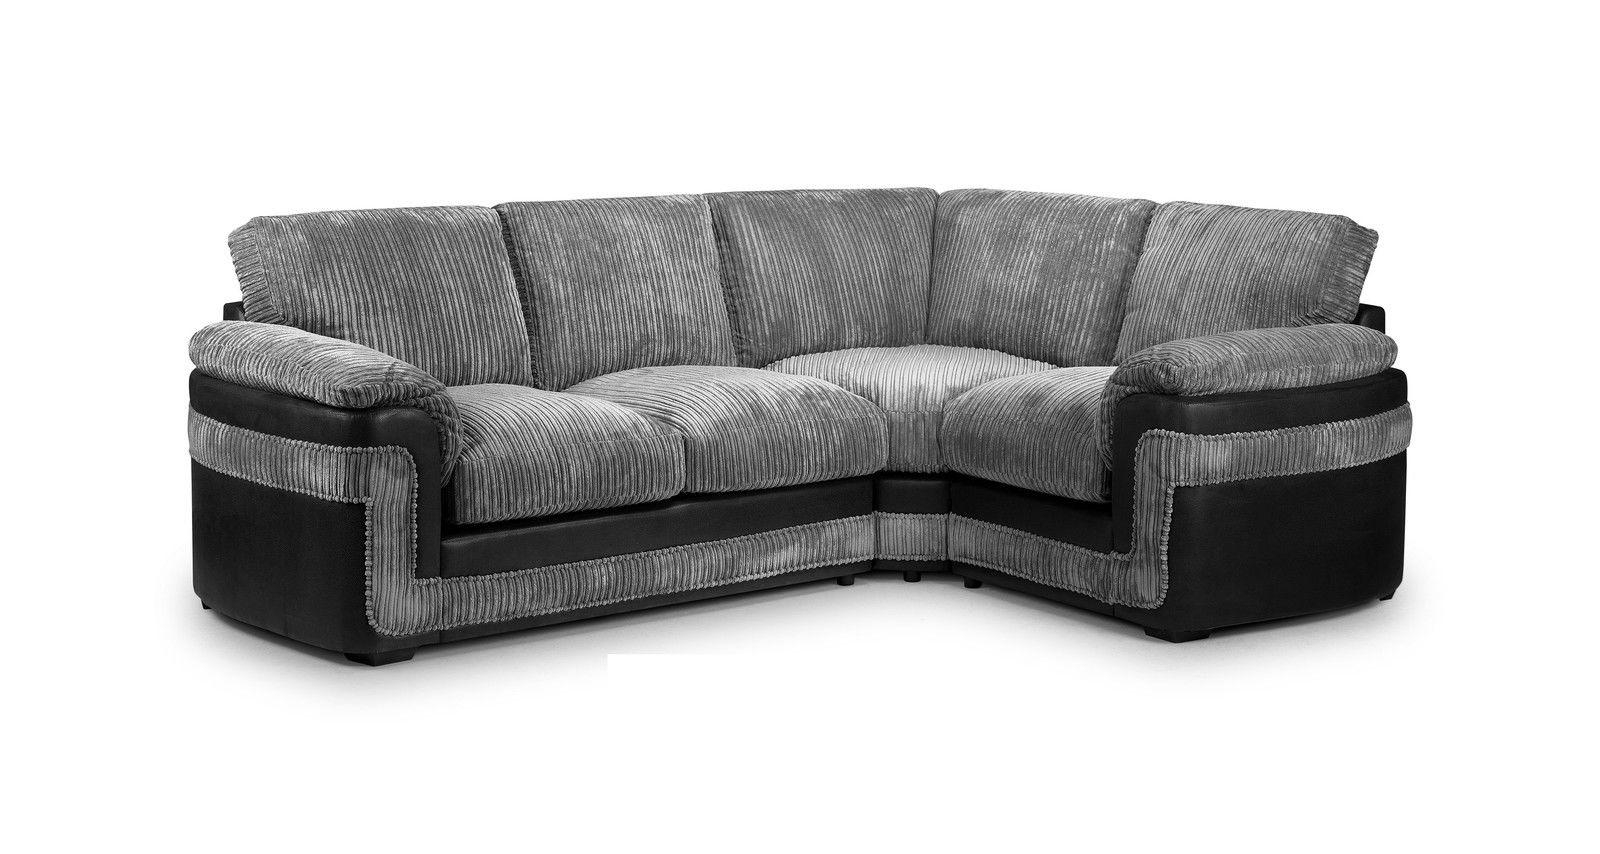 Corner Sofa Cover Bed Slipcover | Deseosol In Black Corner Sofas (Image 7 of 20)